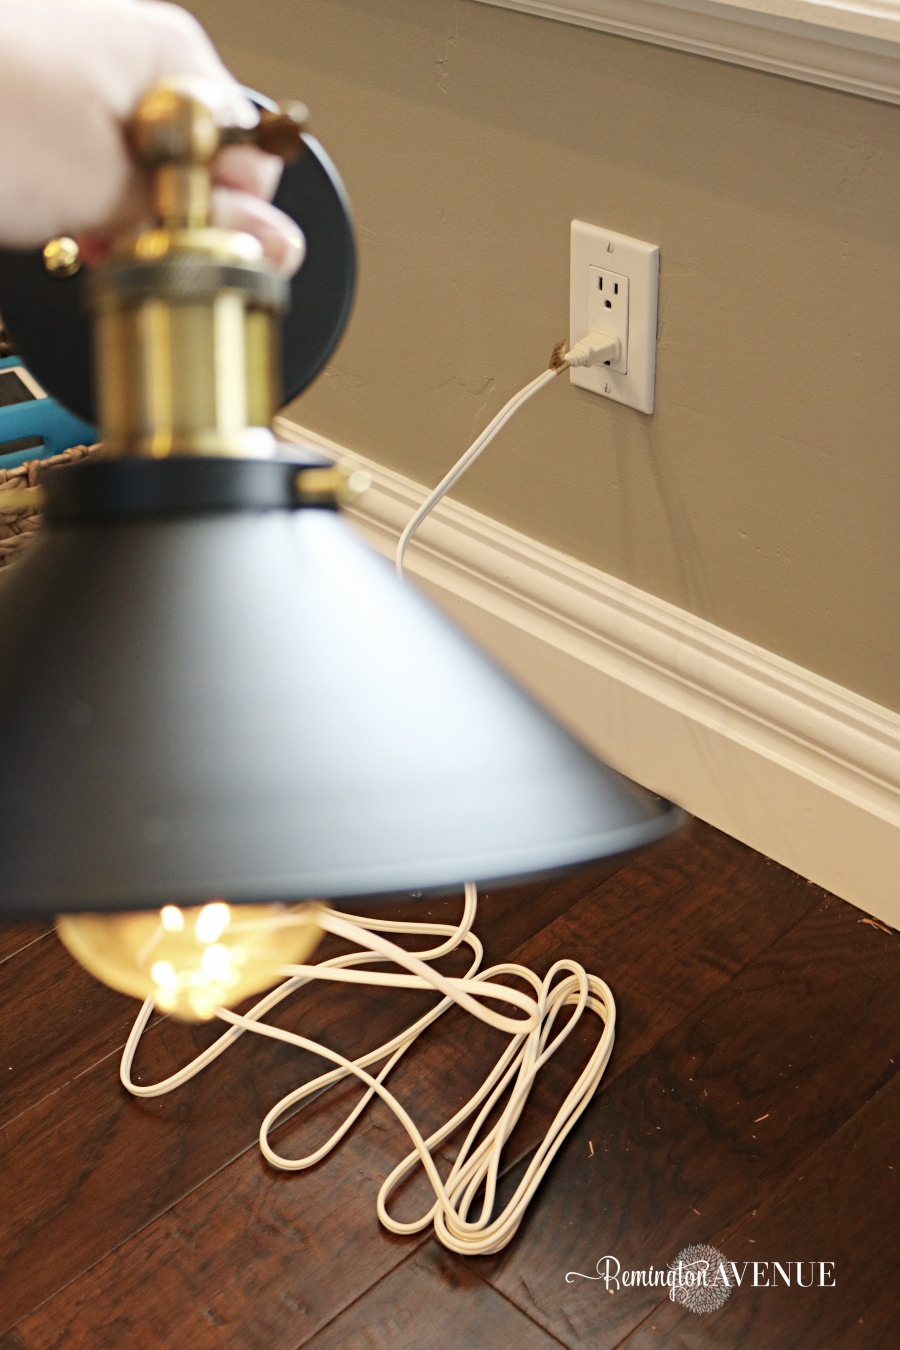 Magnificent How To Convert Hard Wired Light Fixtures Into A Plug In Remington Letkol Mohammedshrine Wiring Cloud Letkolmohammedshrineorg